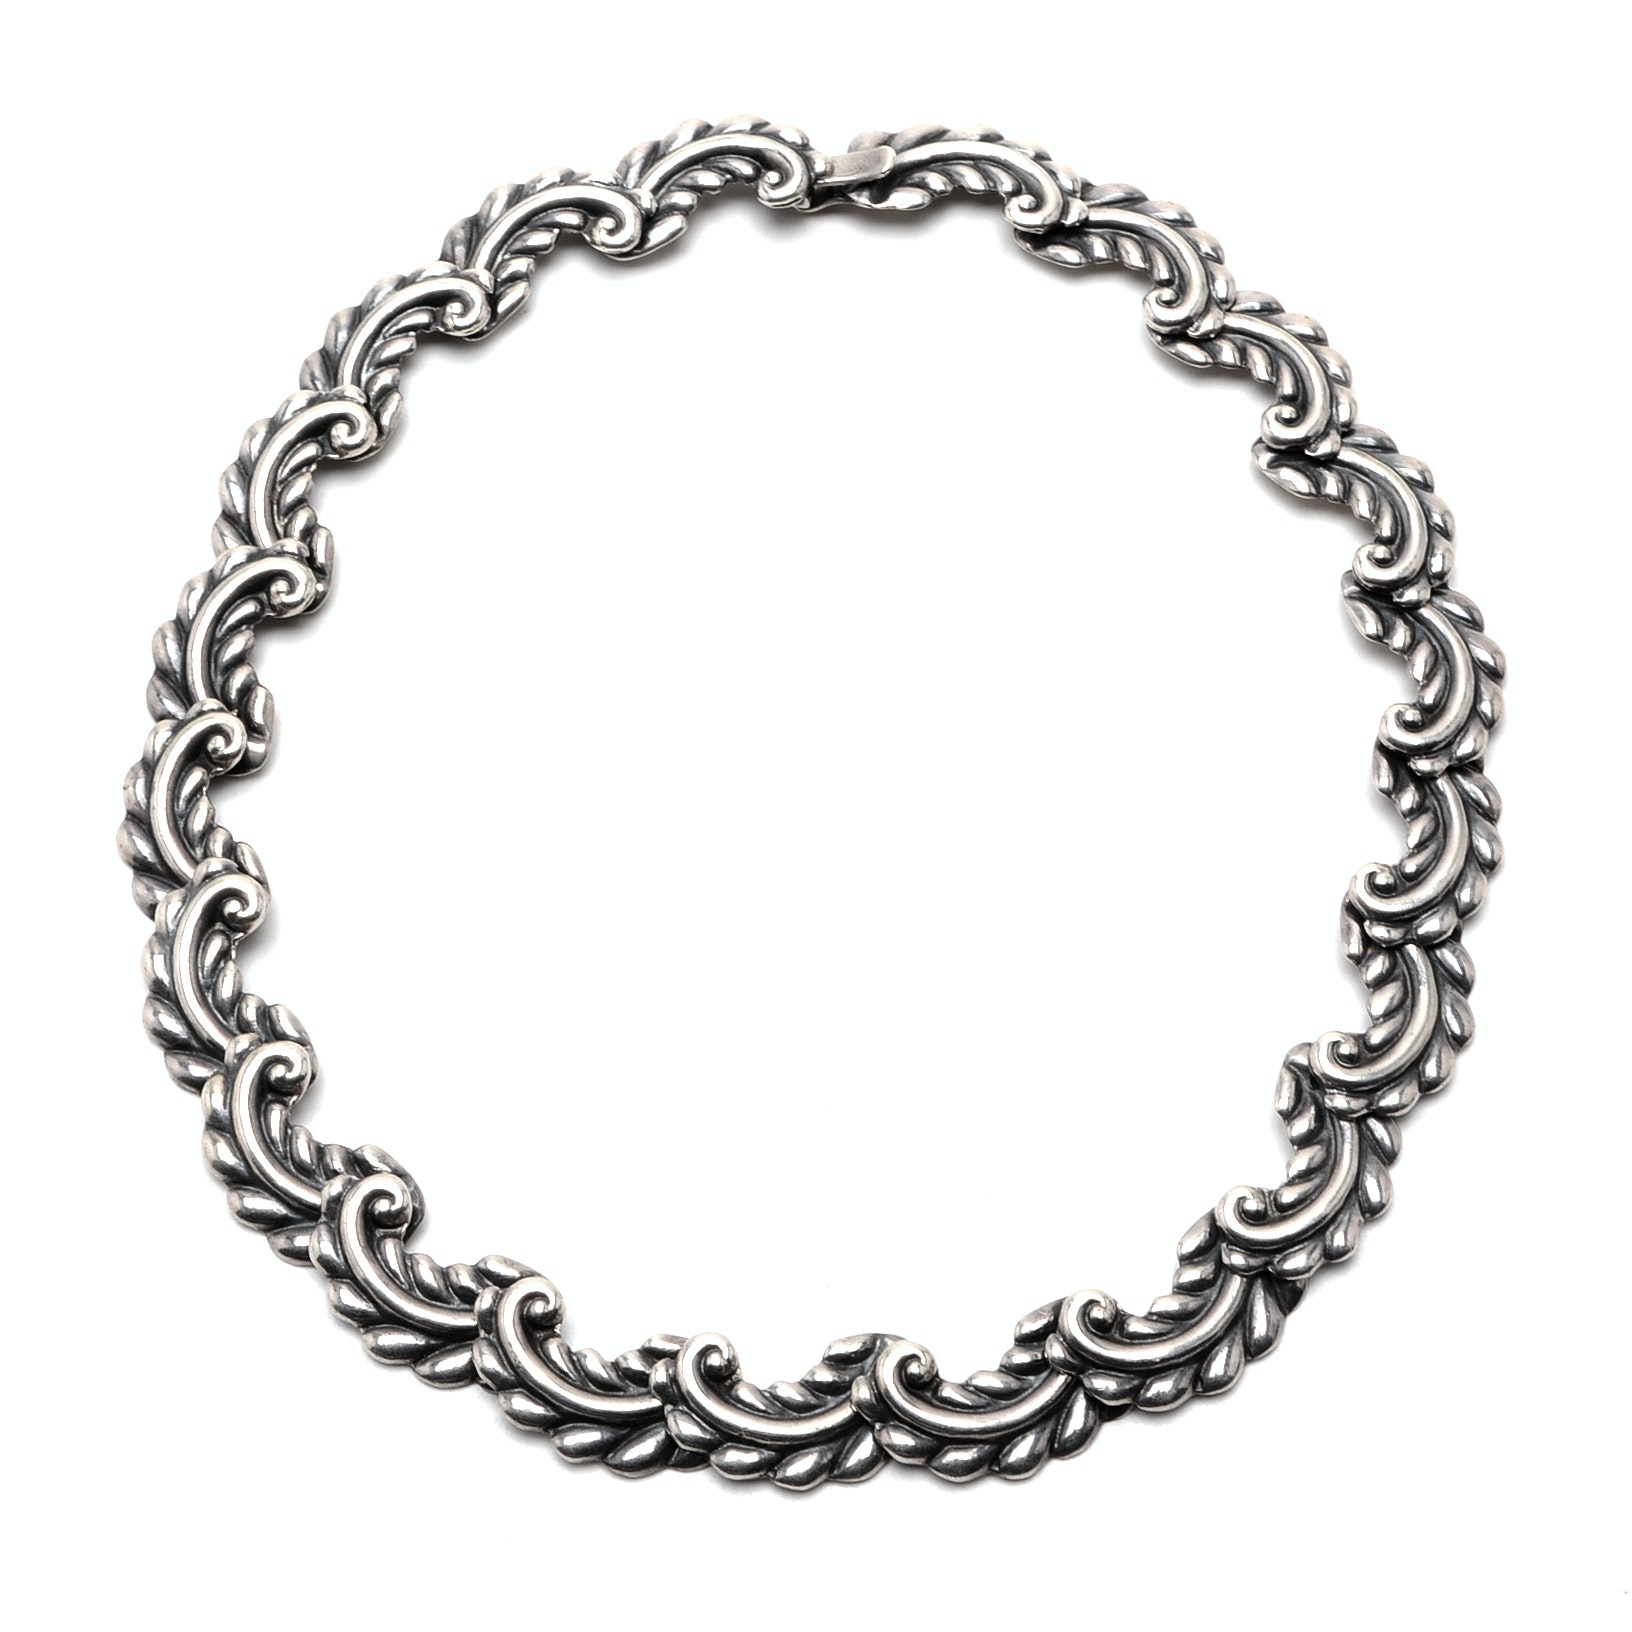 Vintage Taxco. Mexico Artisan Made Sterling Silver Choker Necklace